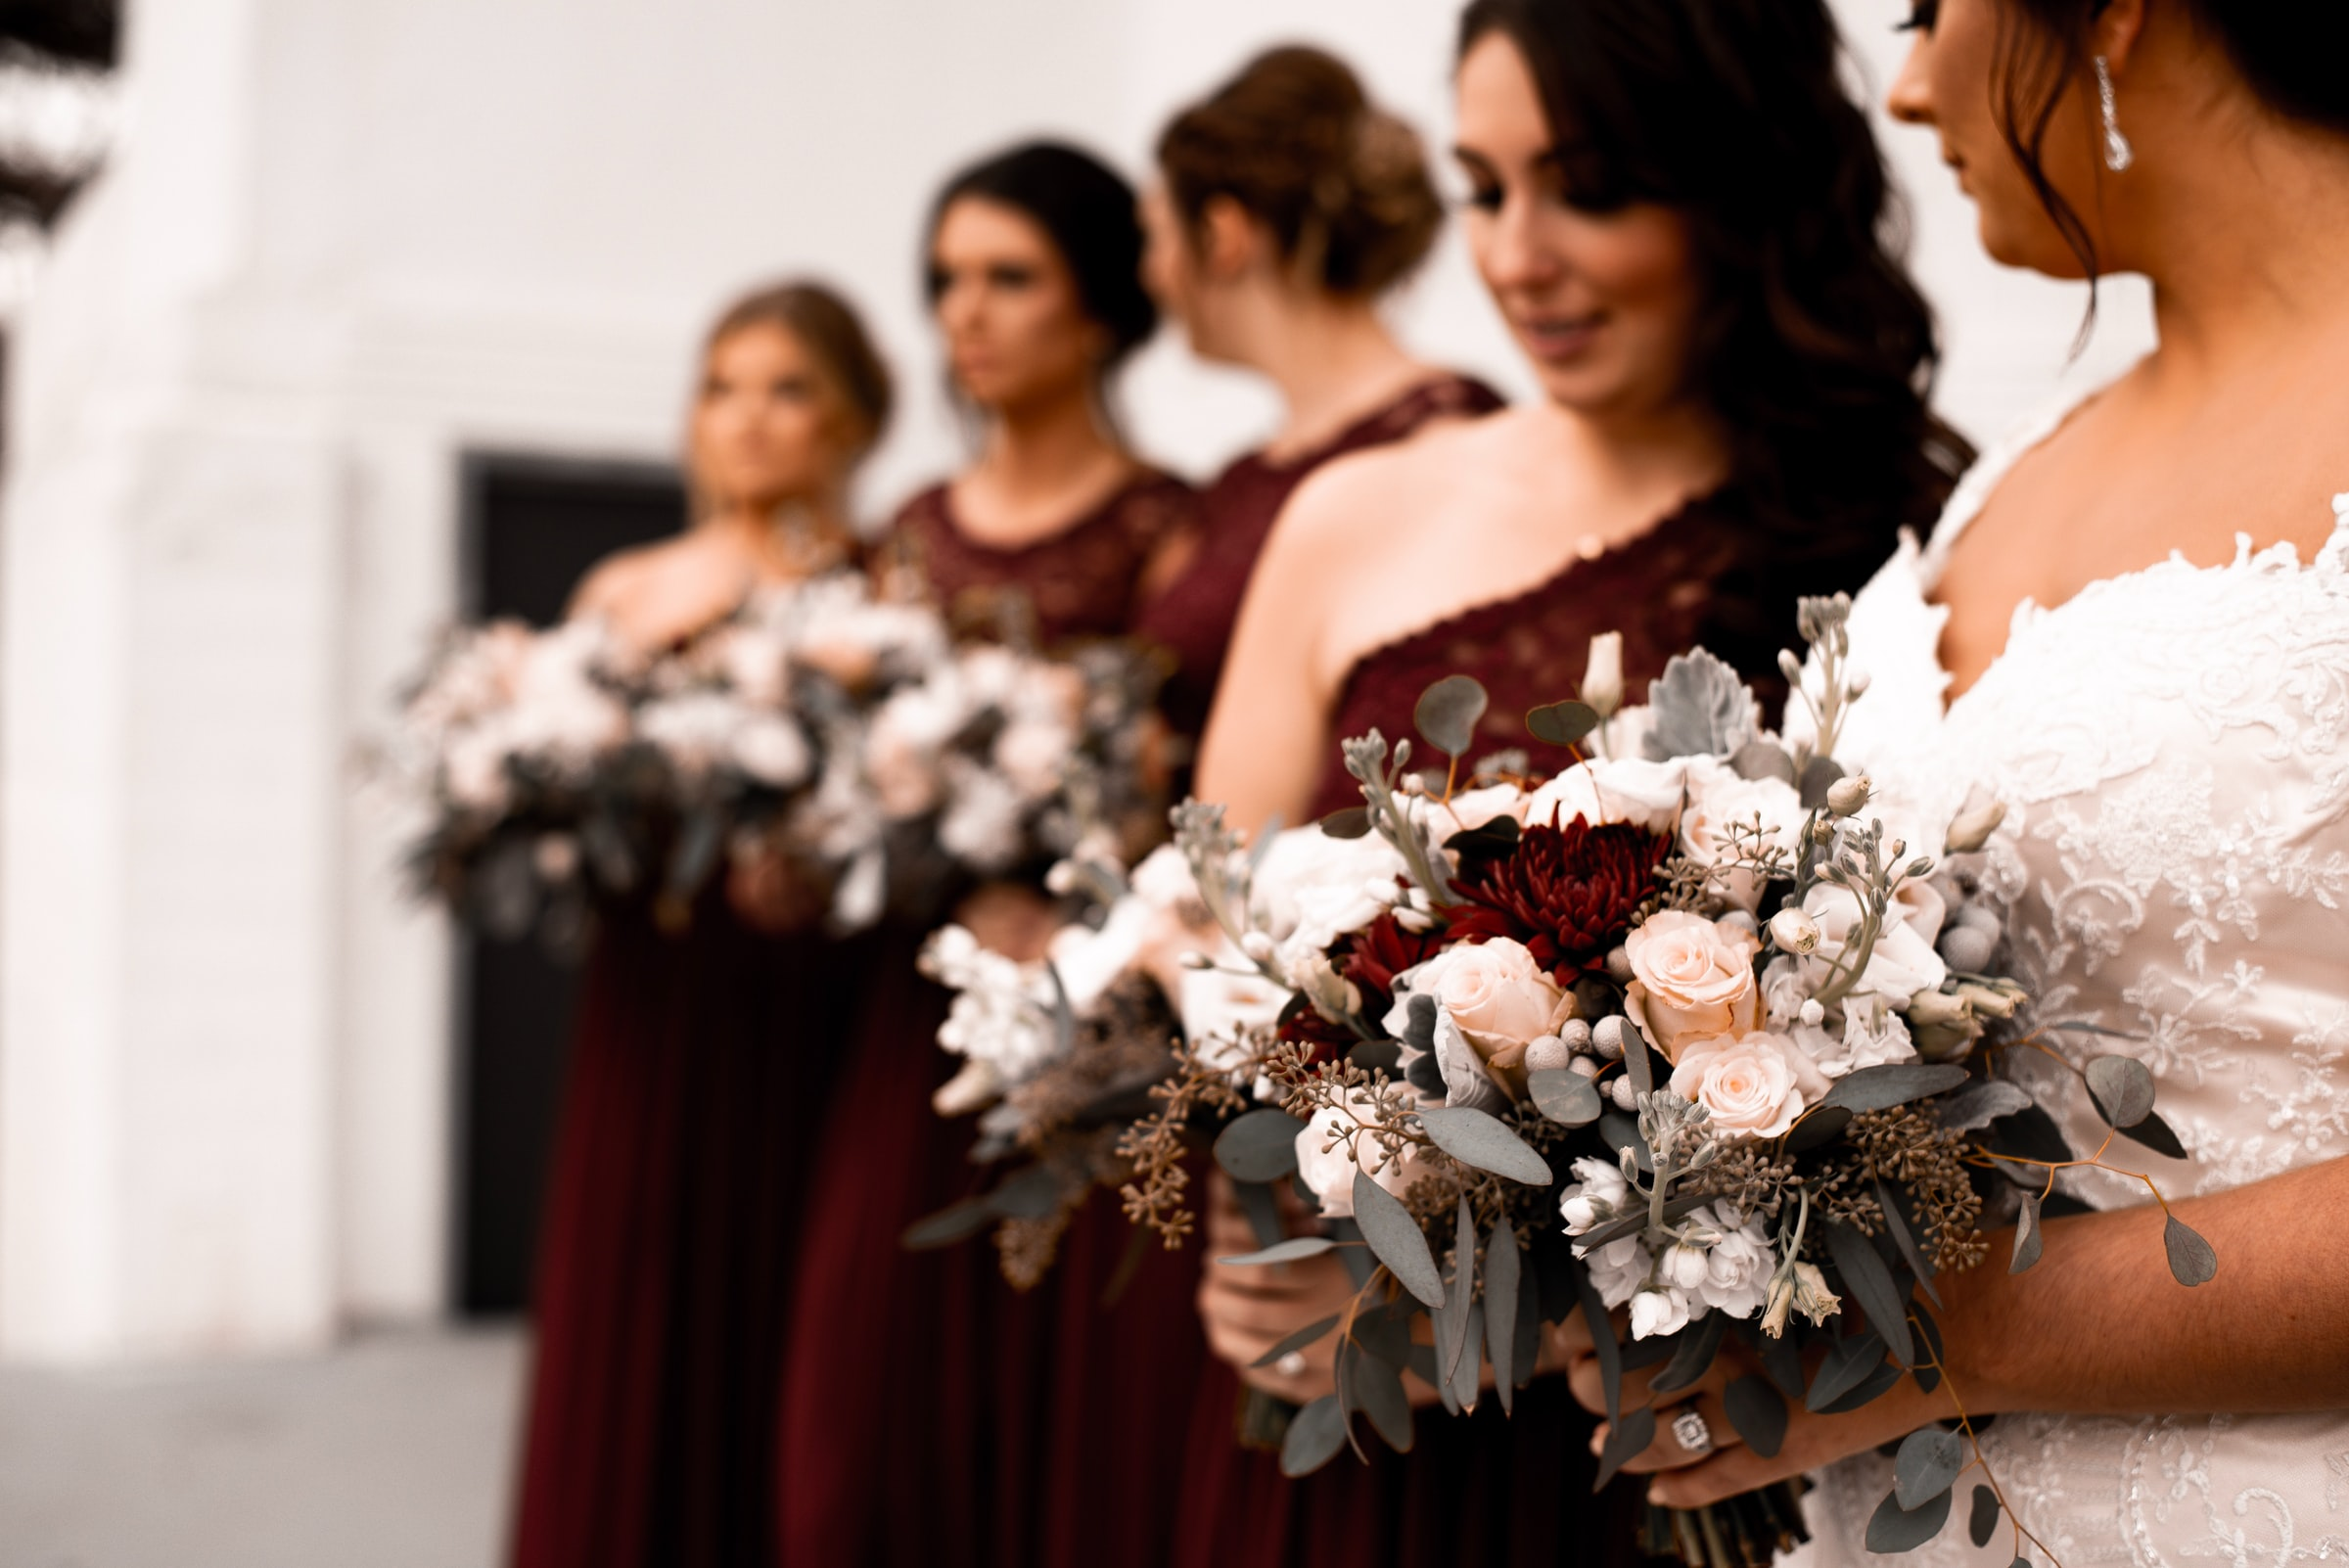 How to Find the Perfect Junior Bridesmaids Dress